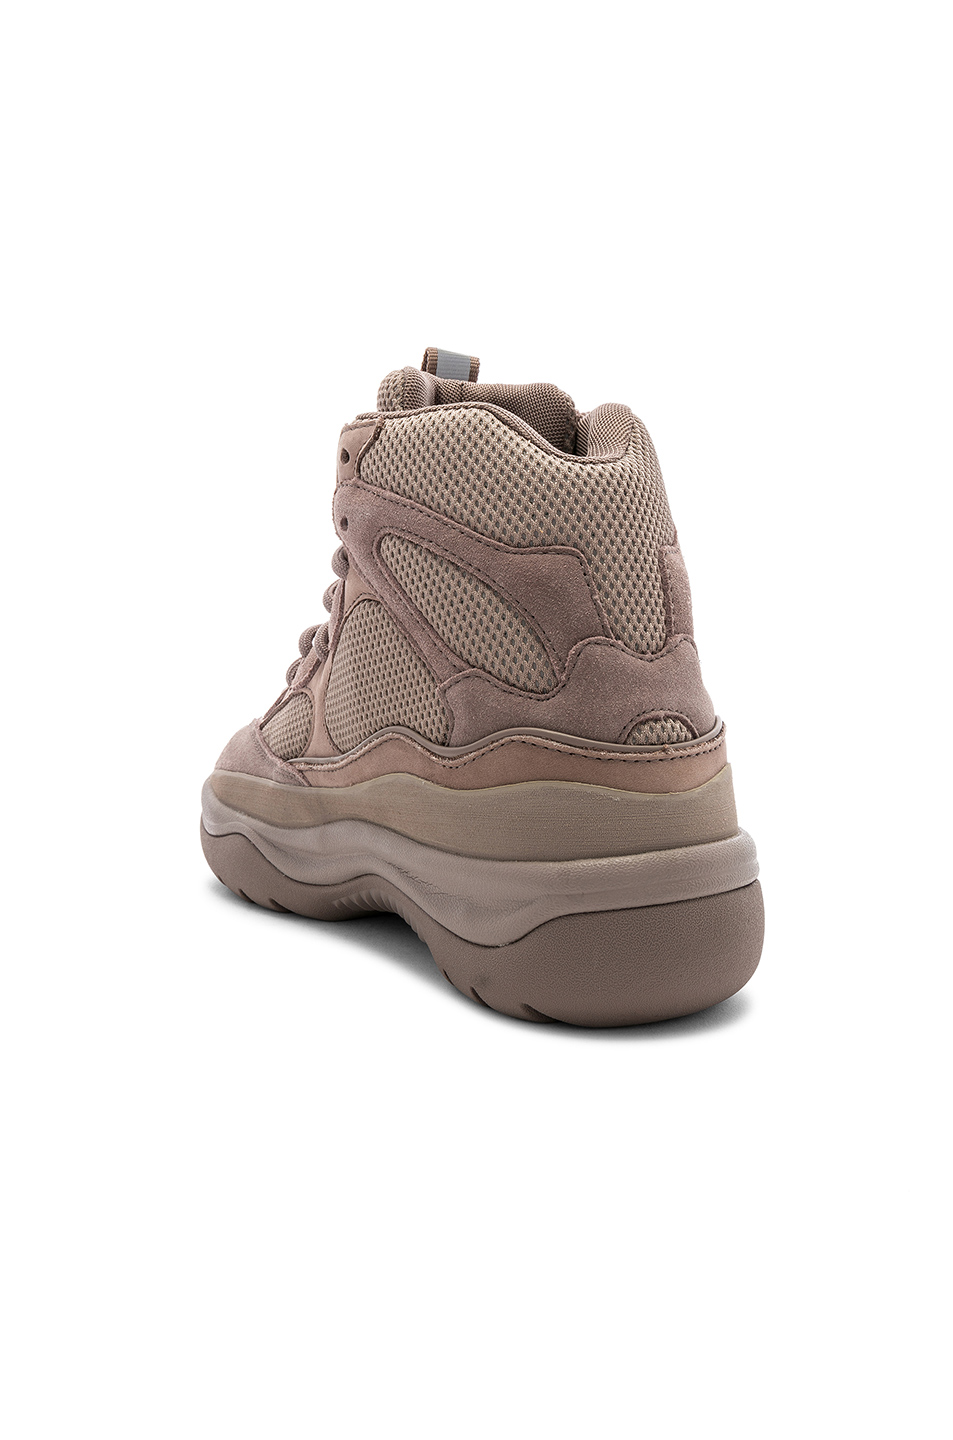 075086384 Buy Original YEEZY Season 7 Desert Boot at Indonesia